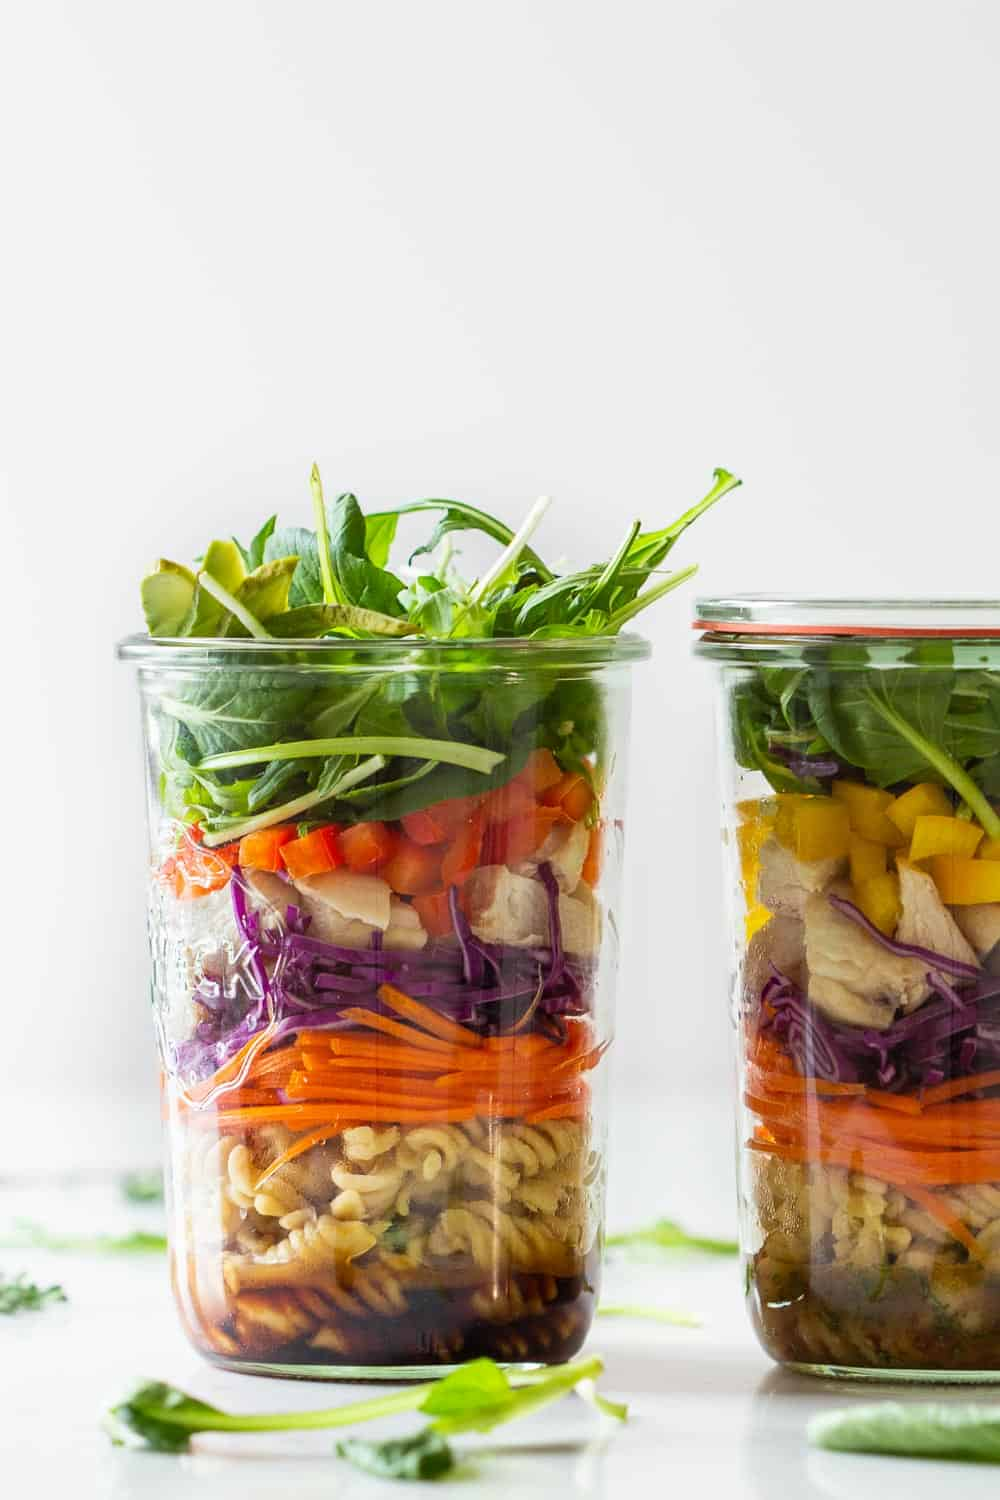 Pasta Salad with Chicken in two jars filled in layers. One dark dressing, one light dressing.